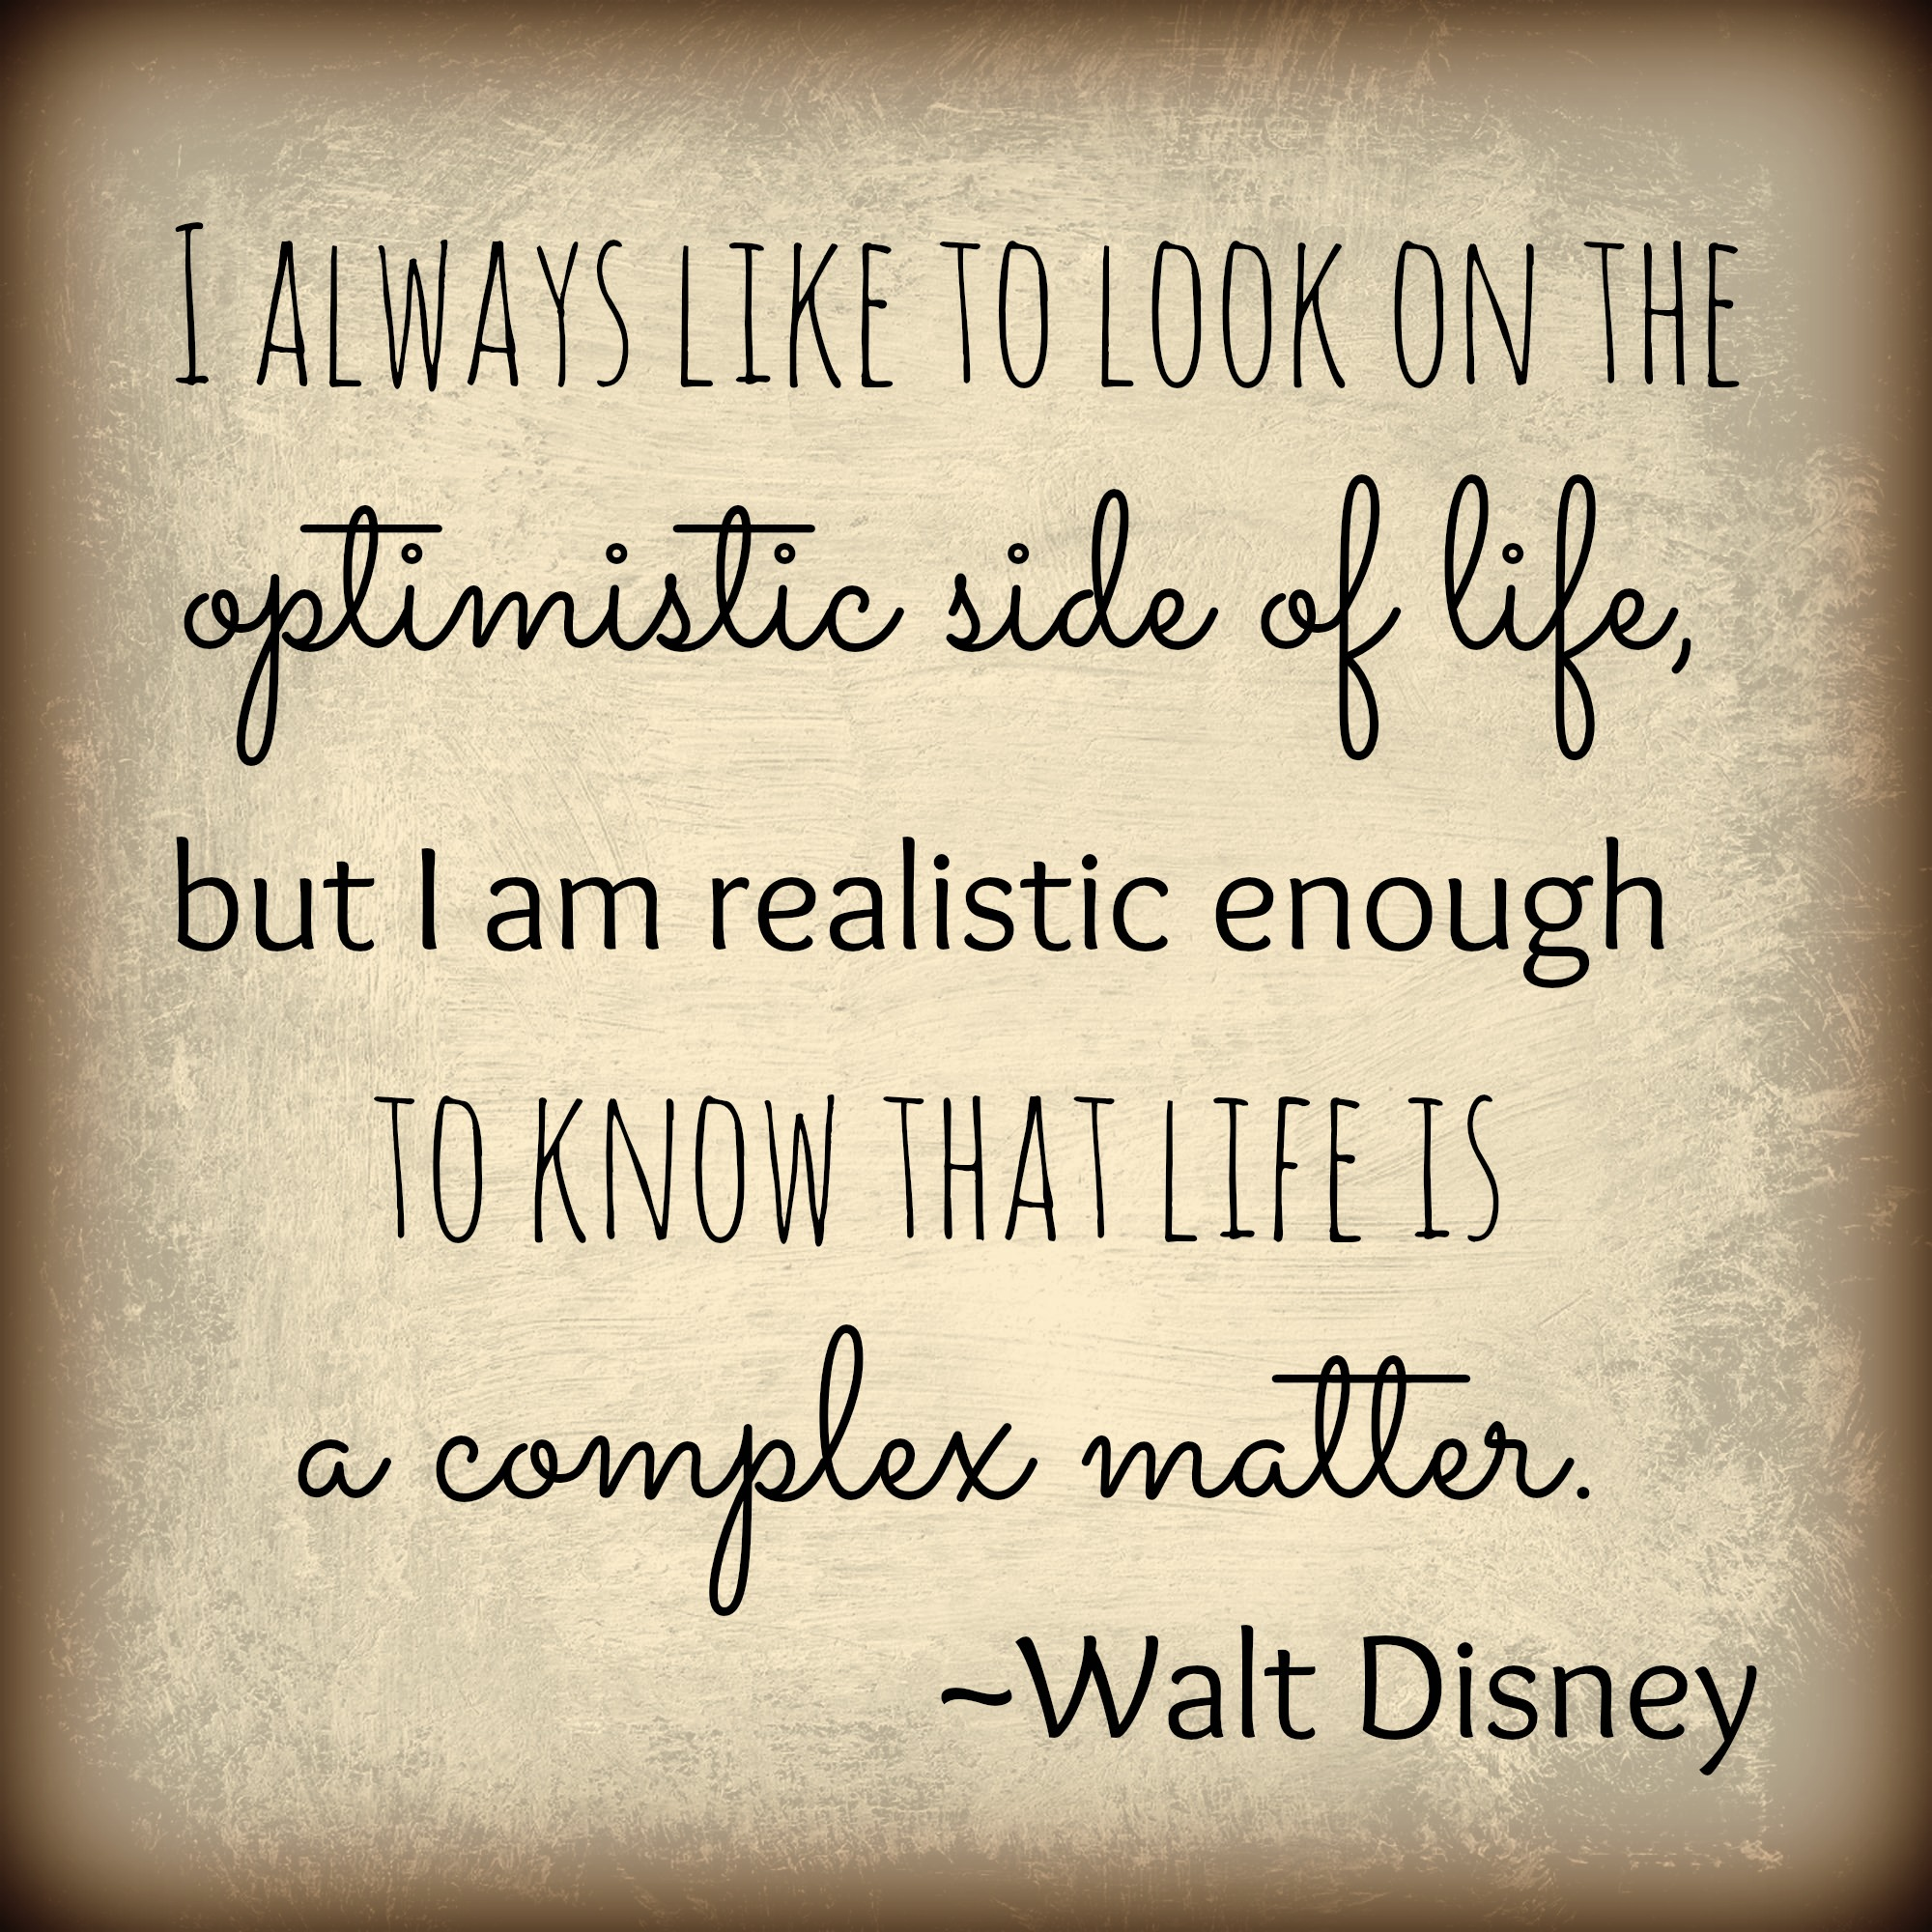 Inspiring Quotes About Friendship Quotes About Friendship Walt Disney Walt Disney Friendship Quotes